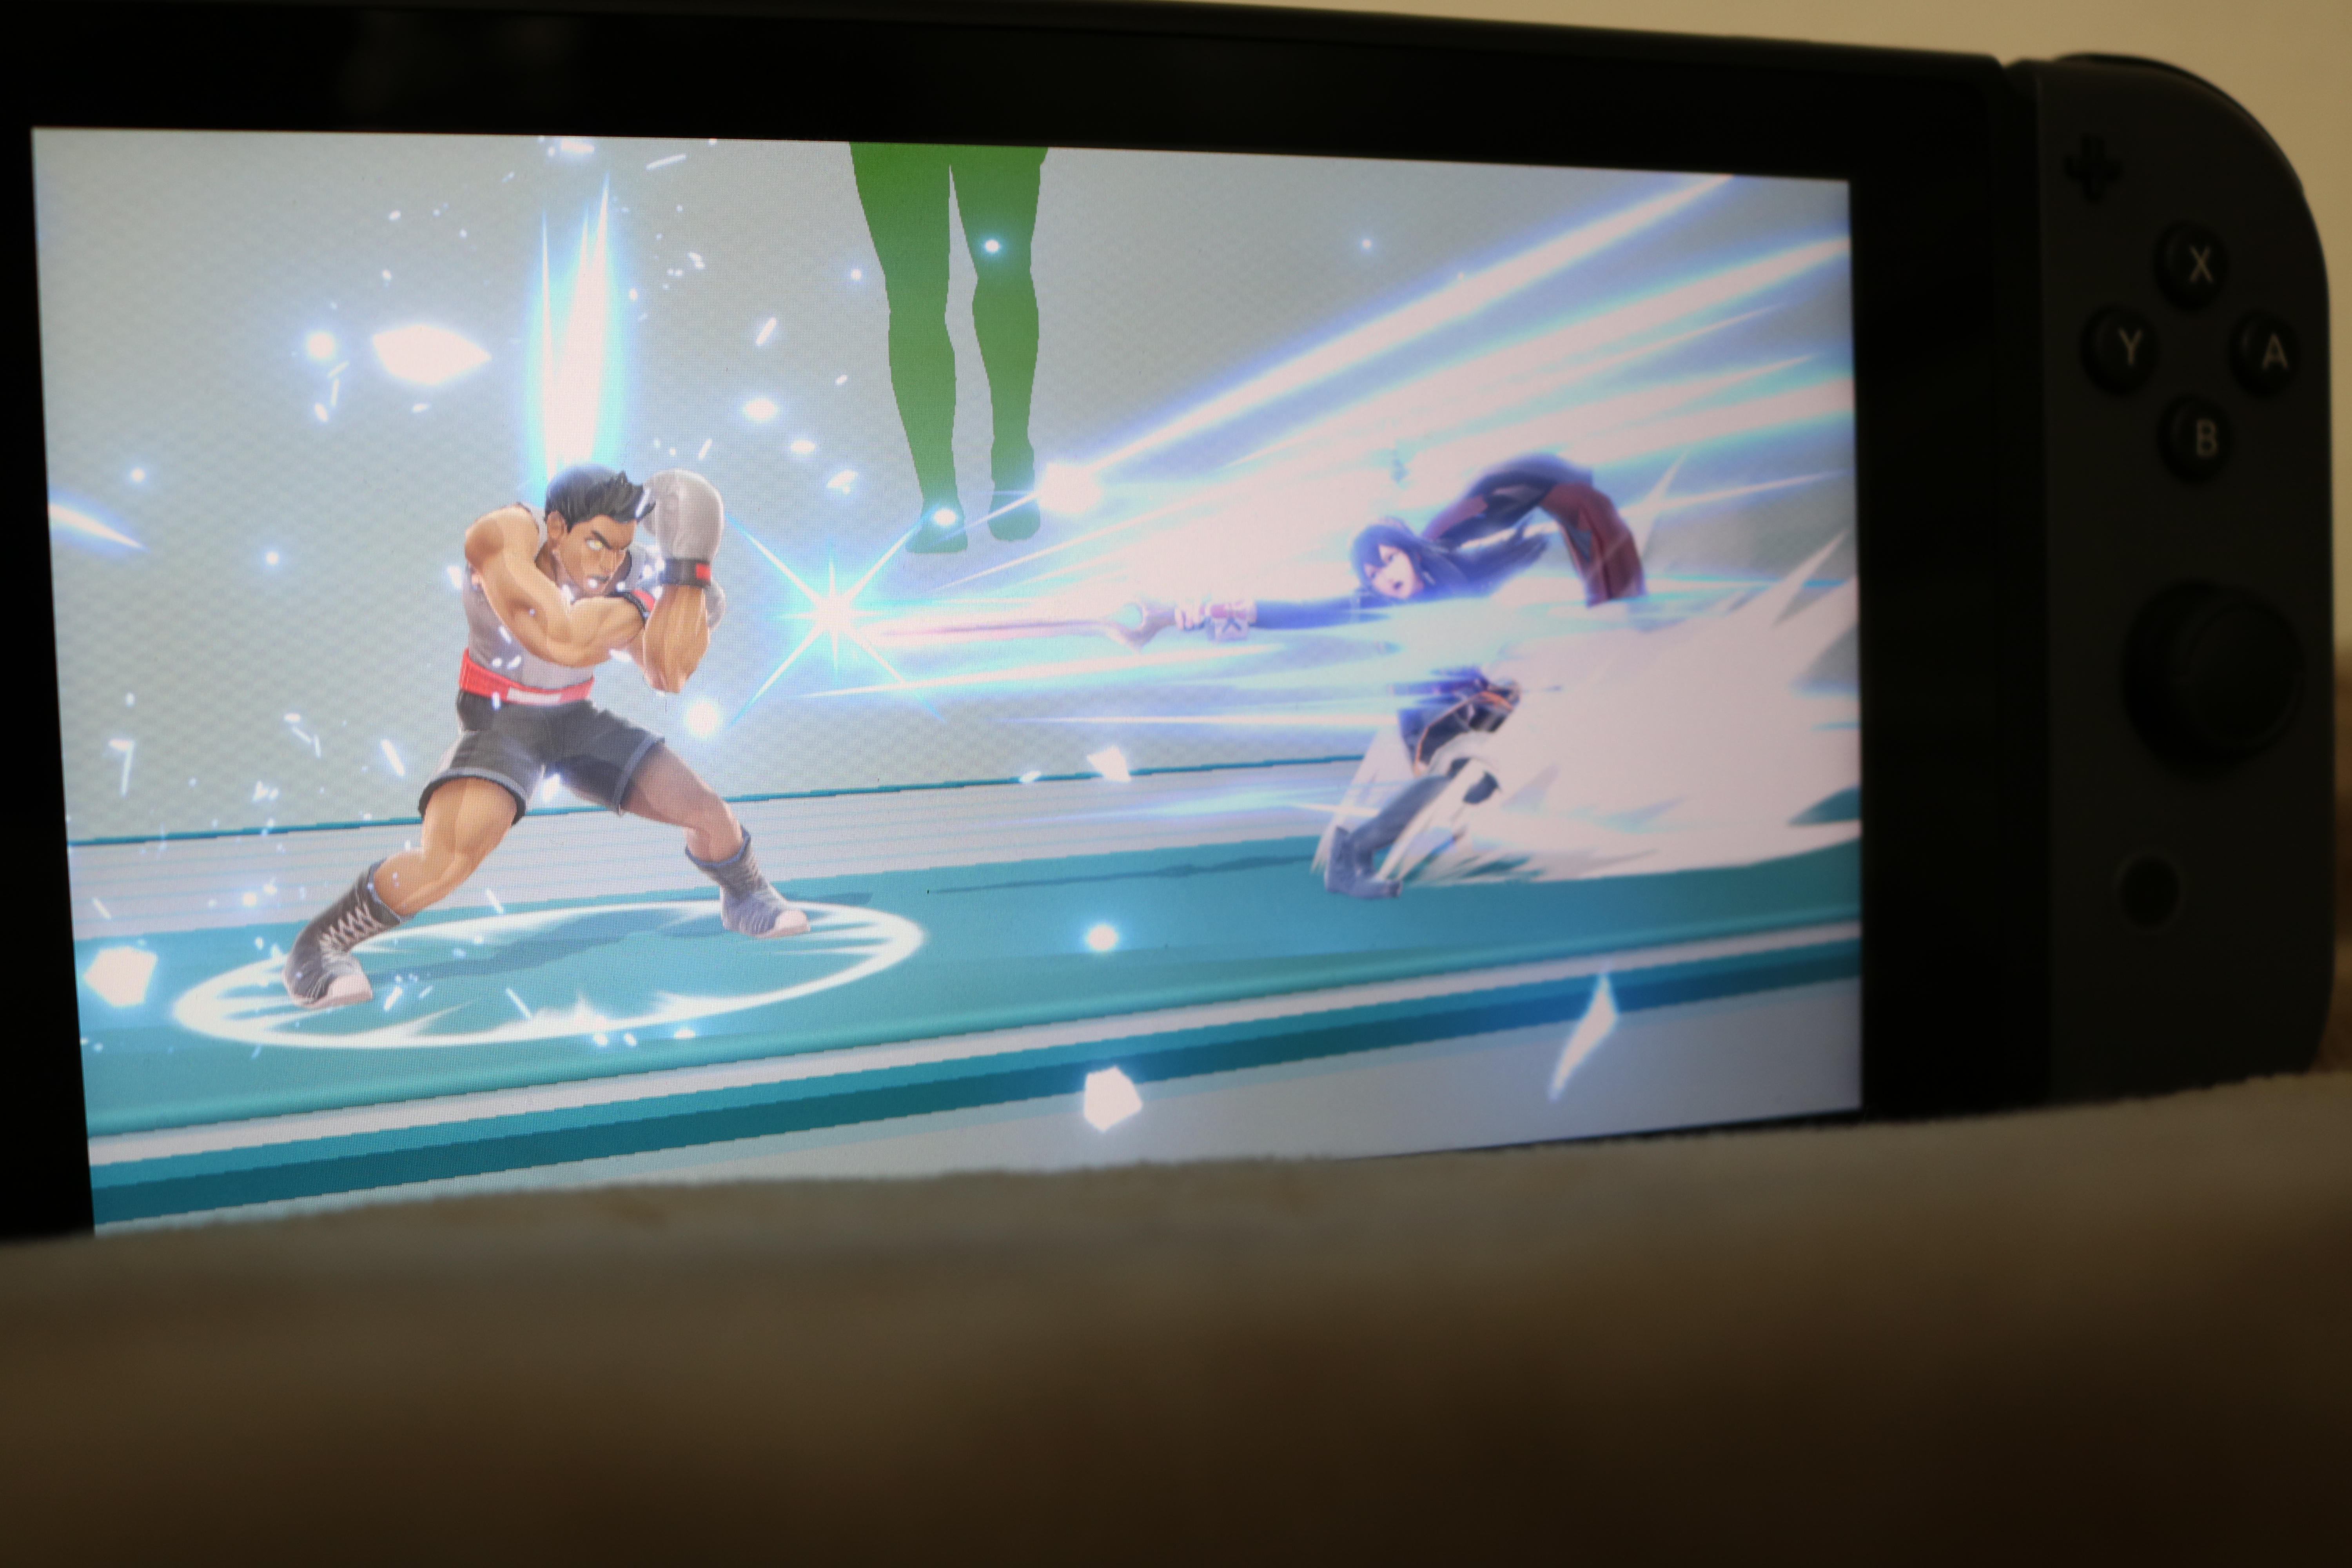 Photo of a Nintendo Switch. with an image of a battle between Little Mac and Lucina on the screen.